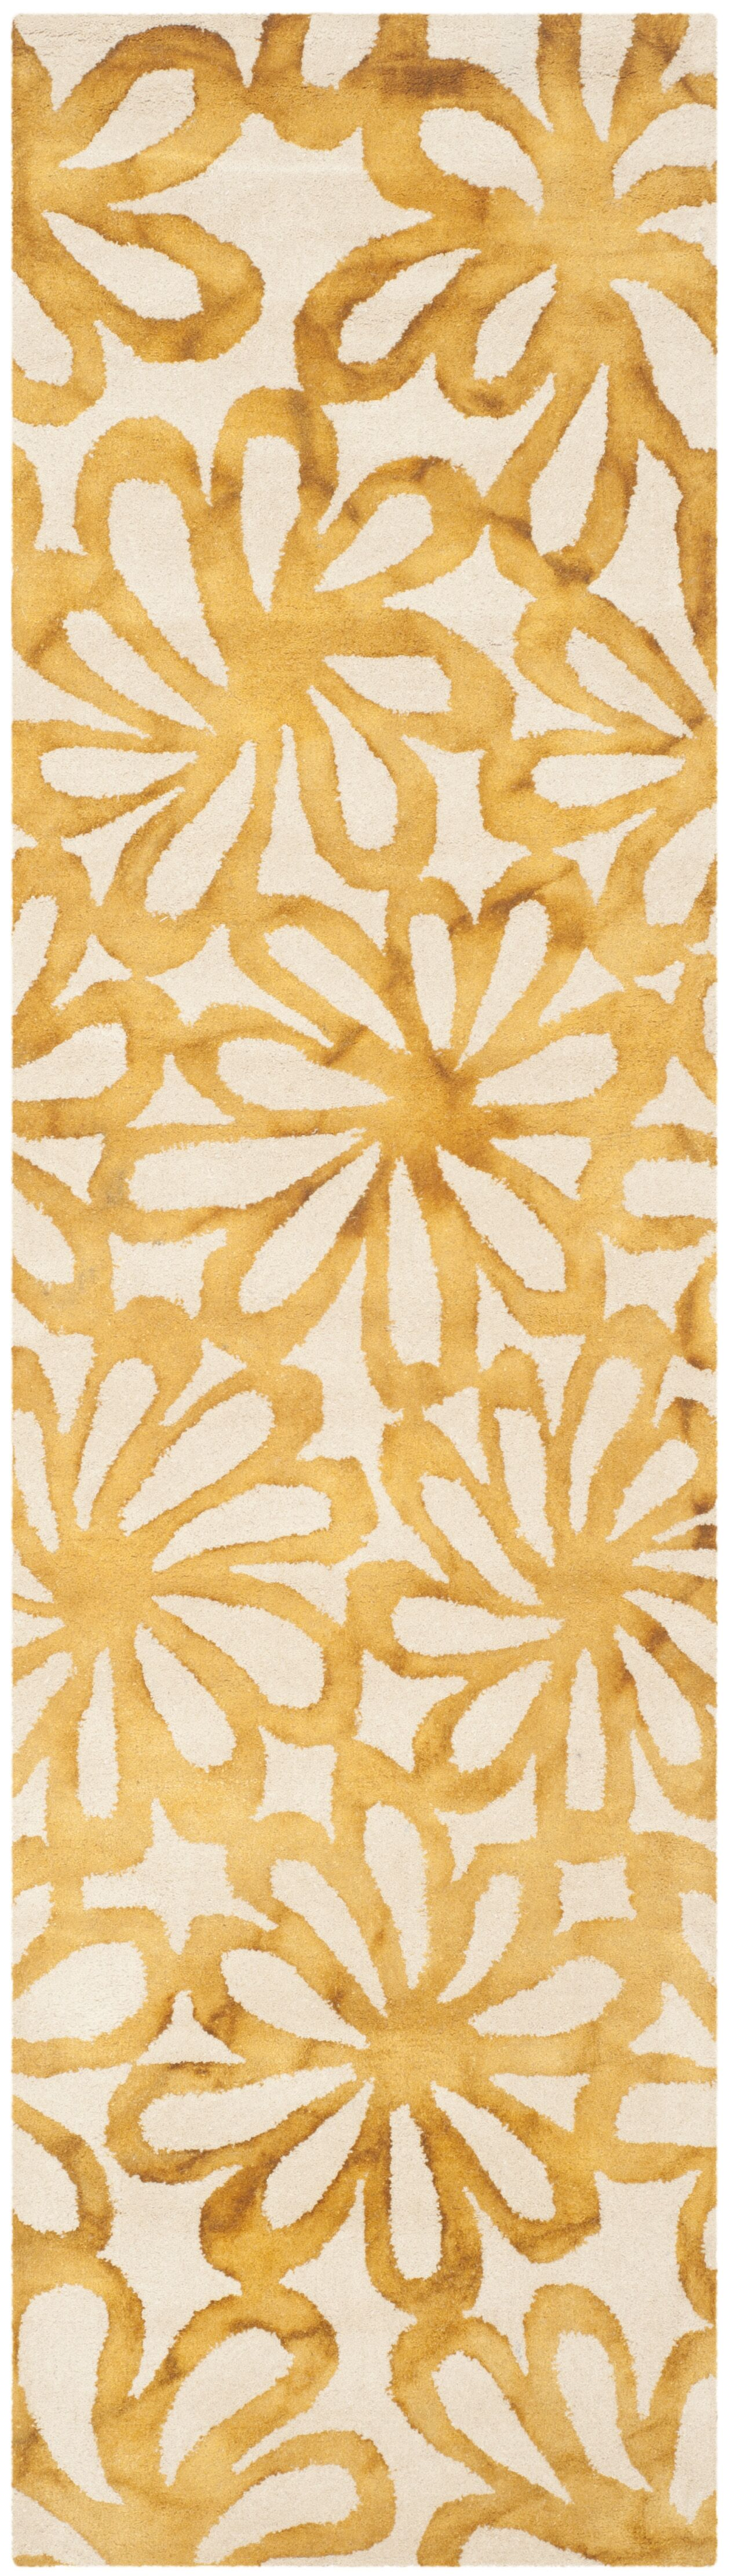 Hand-Tufted Beige & Gold Area Rug Rug Size: Runner 2'3